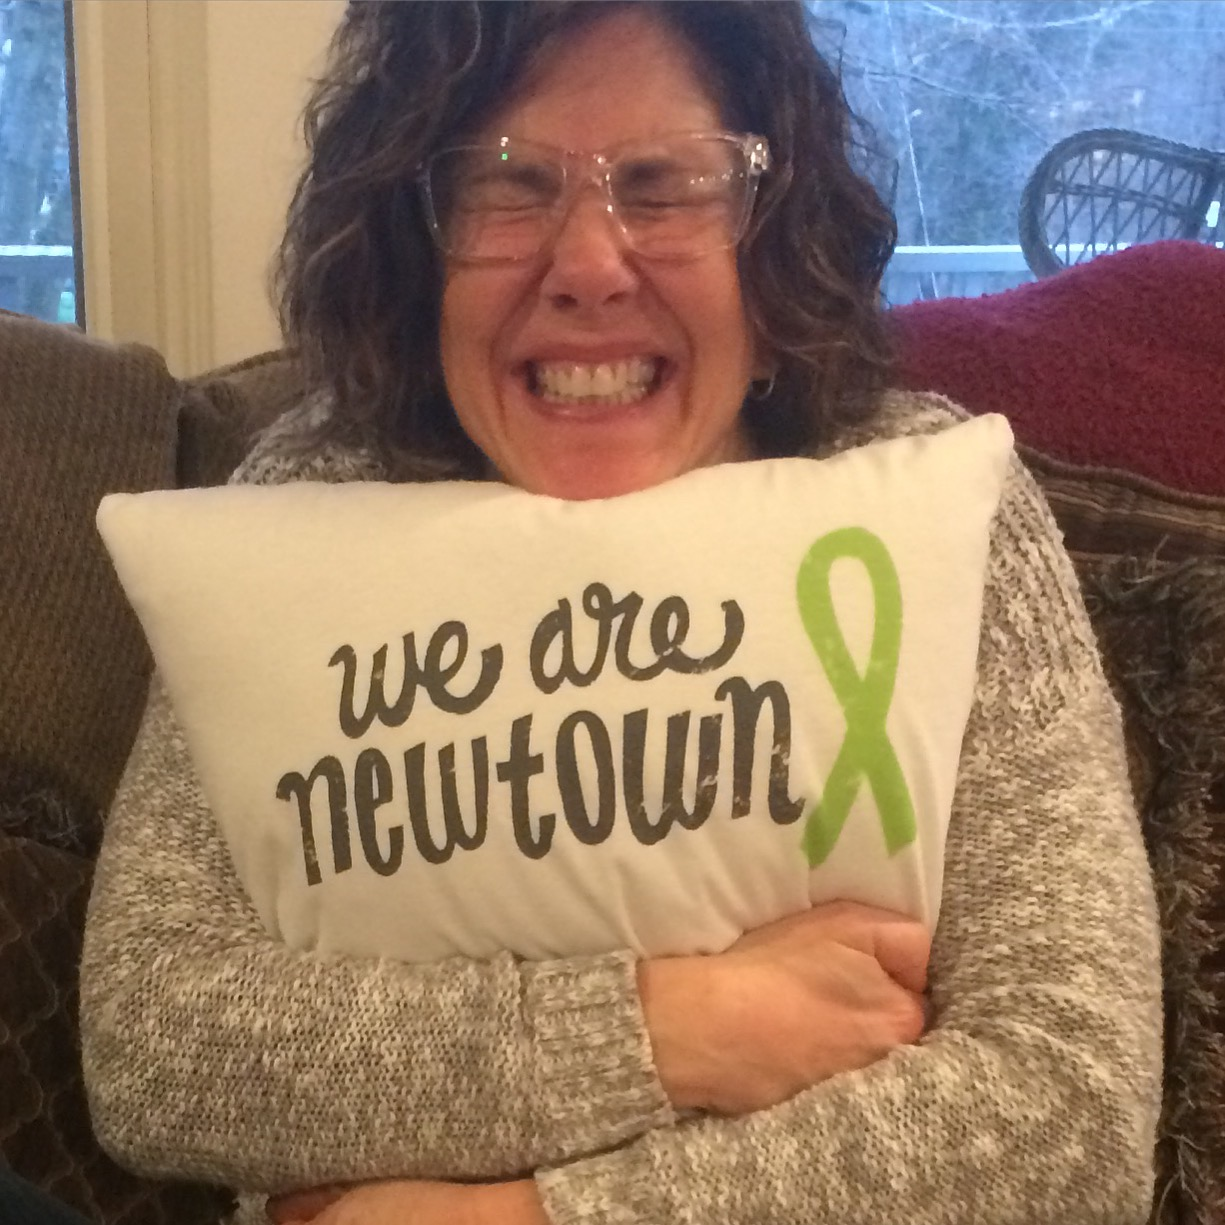 Writer Kathryn Mayer hugging Newtown pillow